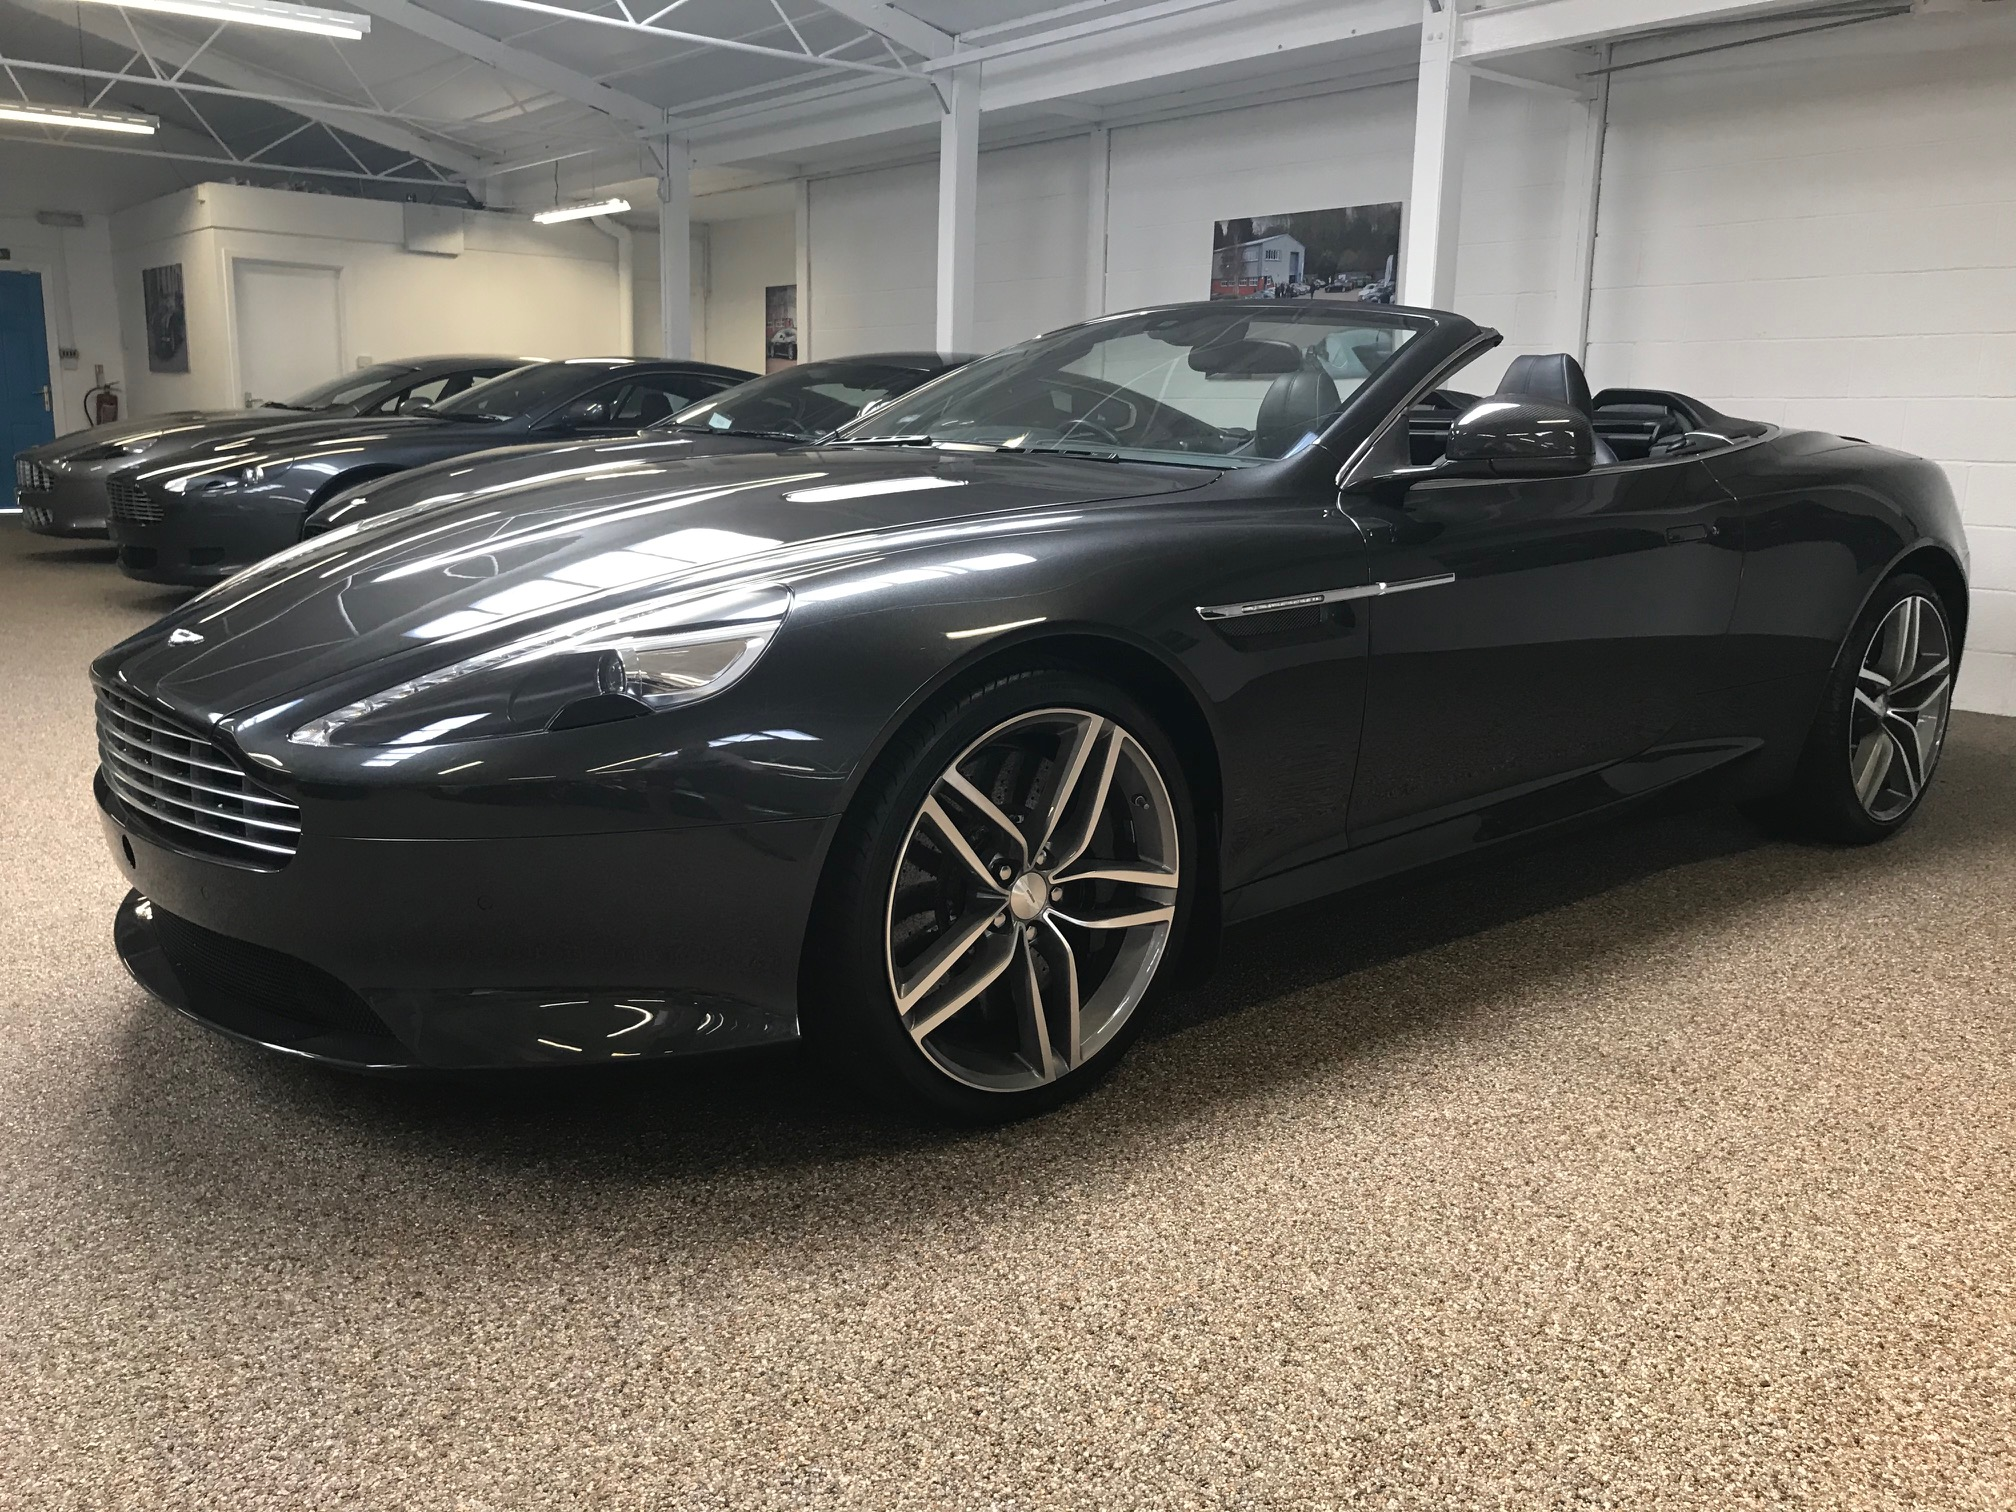 Aston Martin DB9 Volante For sale